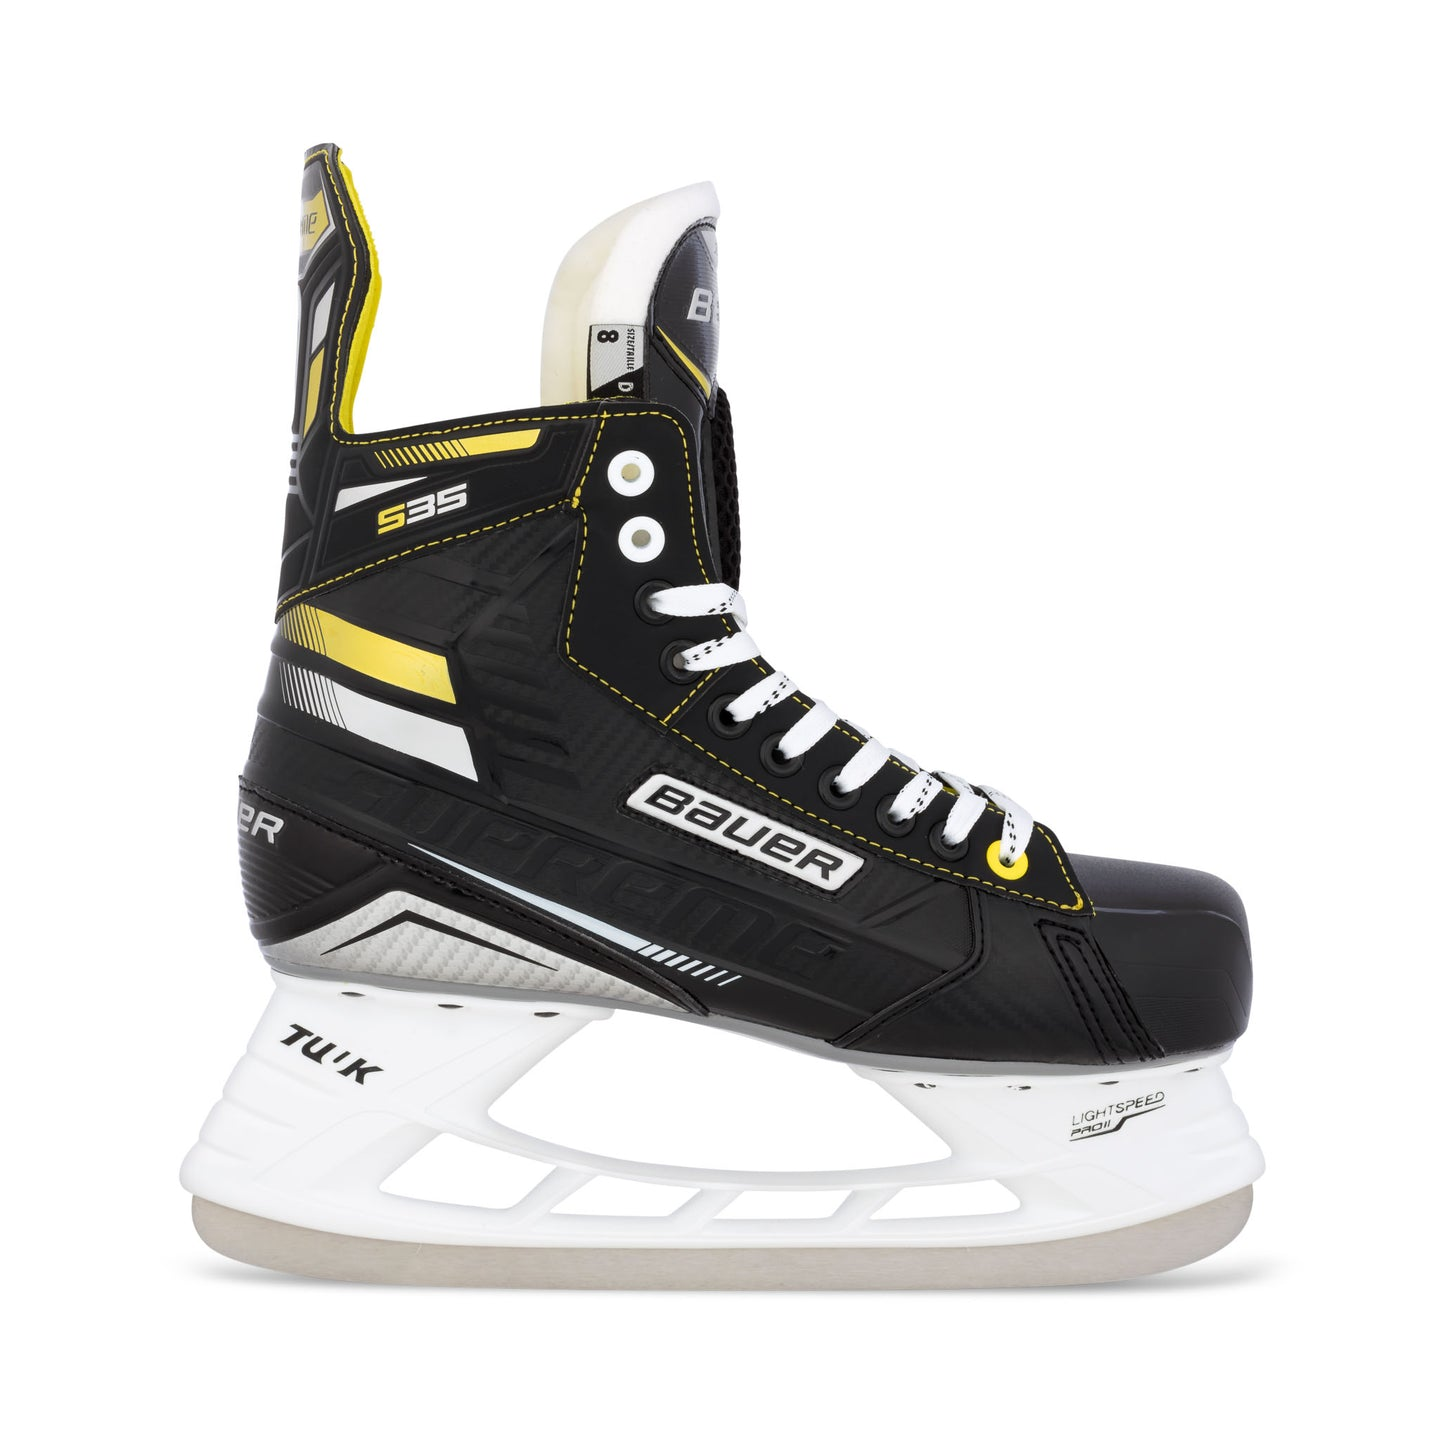 Bauer Supreme S35 Senior Hockey Skates